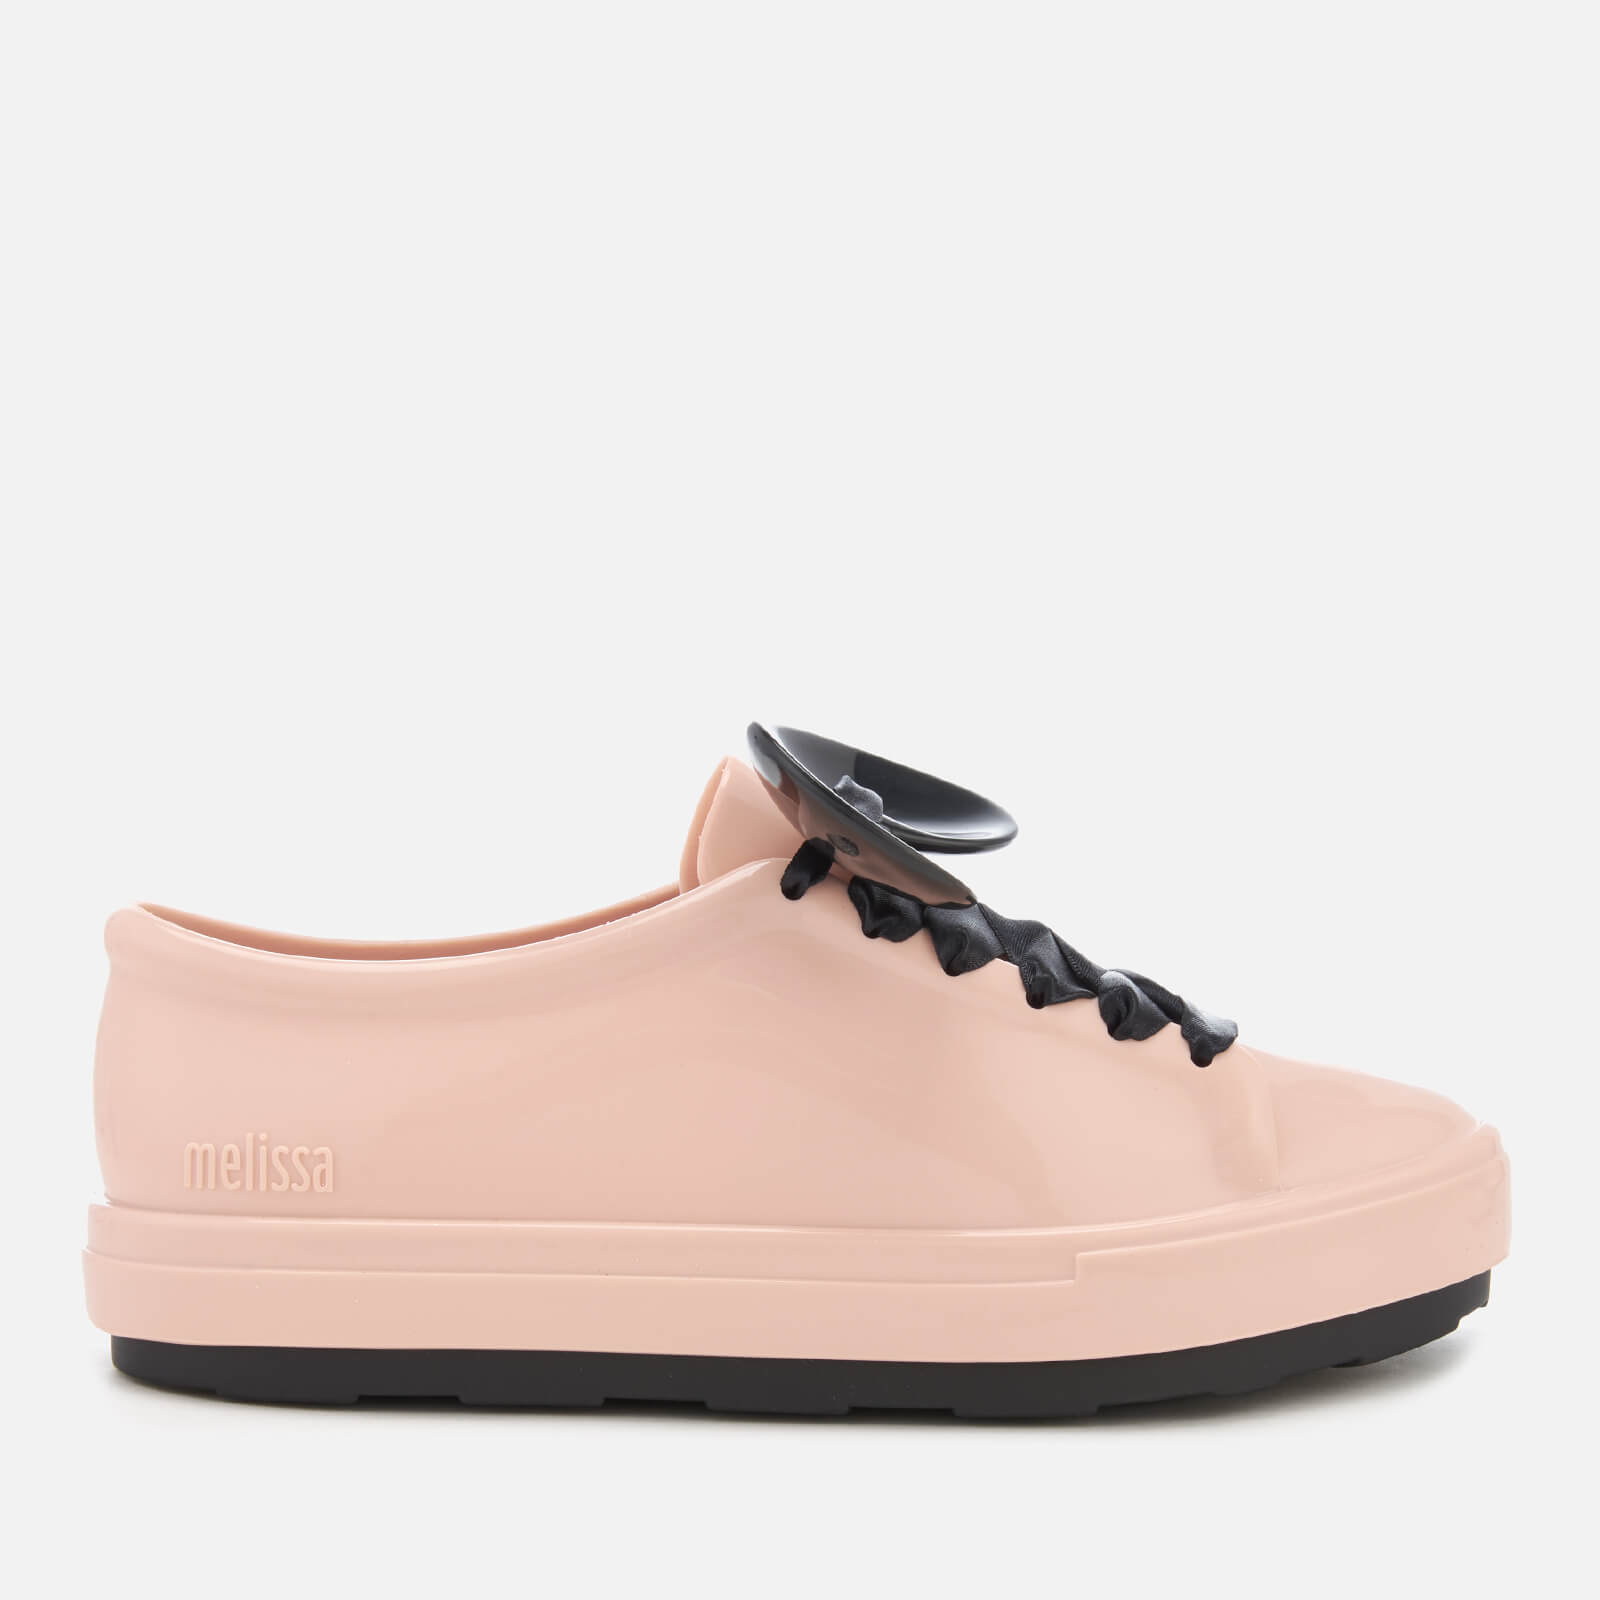 10942354a5e Melissa Women s Disney Be Trainers - Blush Contrast Clothing ...